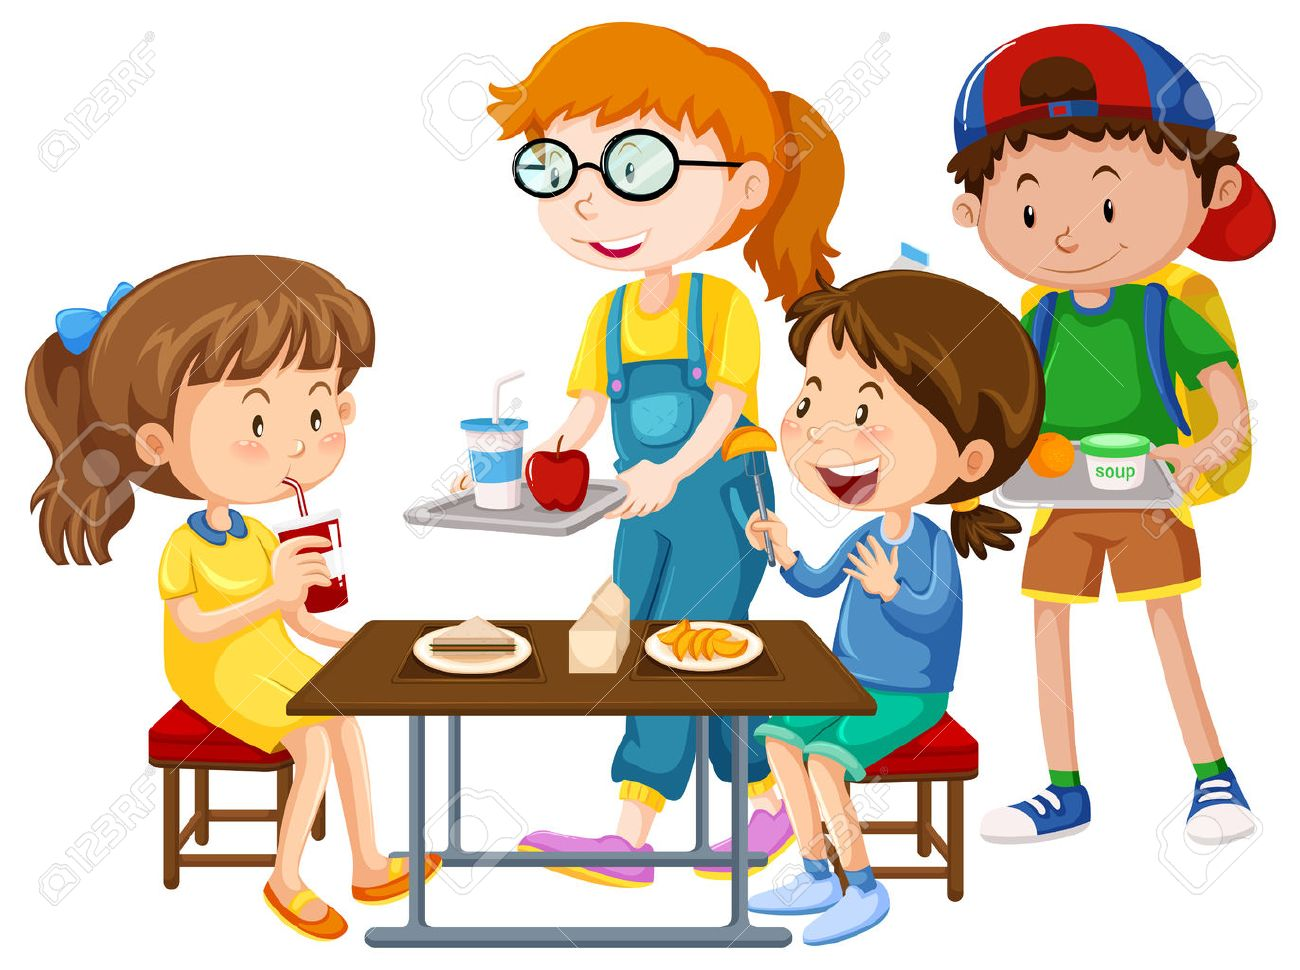 children having meal at table illustration royalty free cliparts